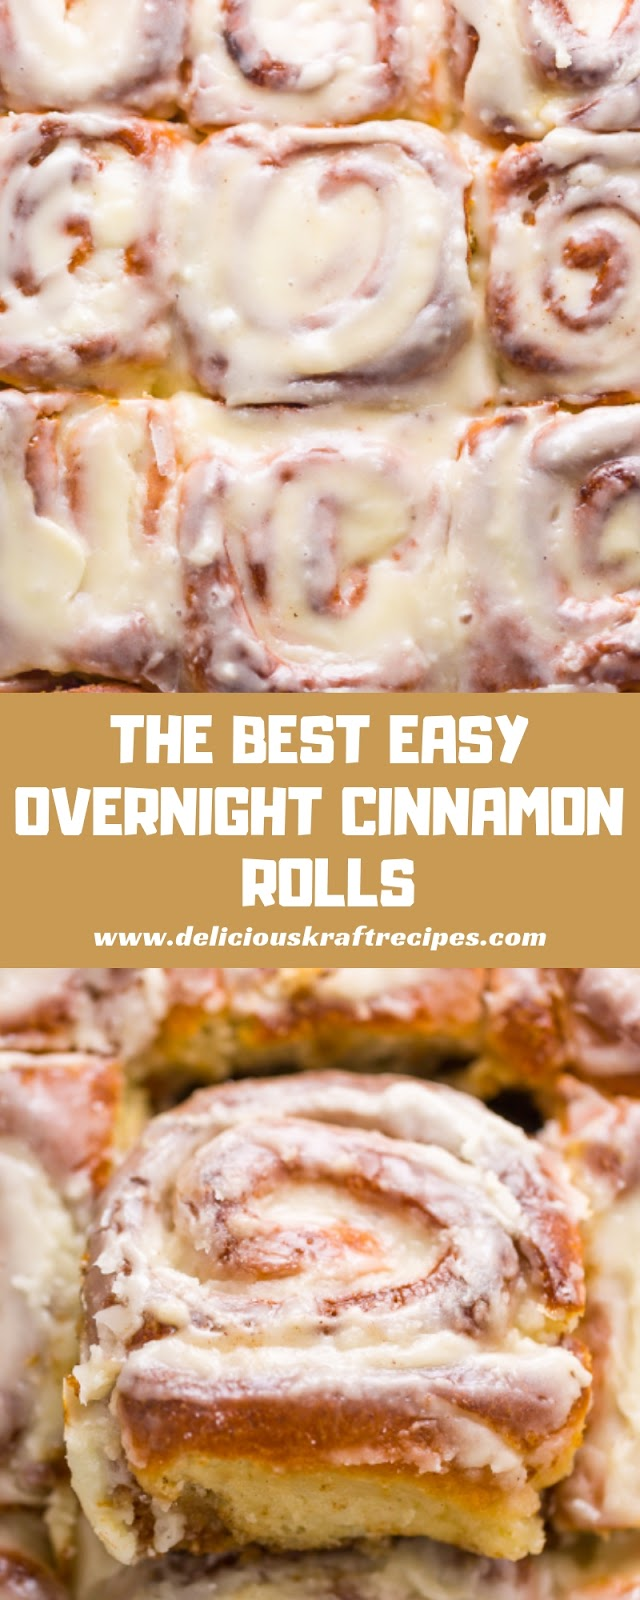 THE BEST EASY OVERNIGHT CINNAMON ROLLS